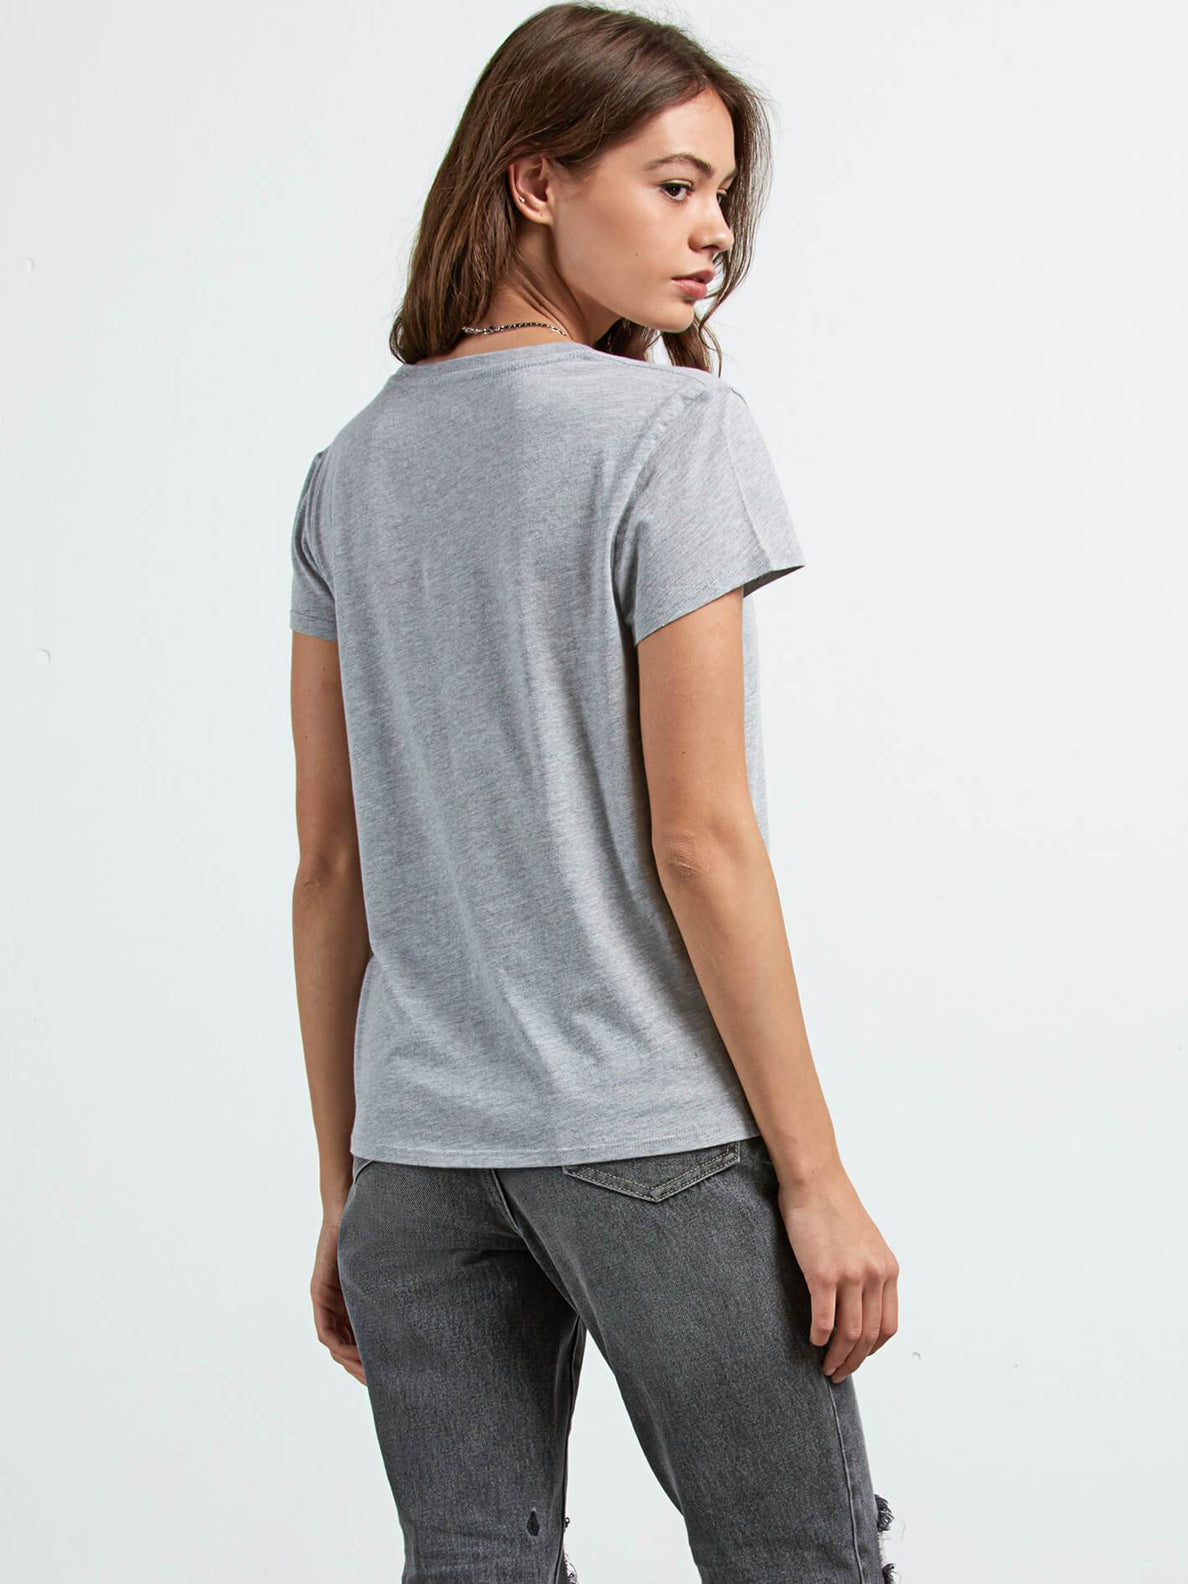 Easy Babe Rad 2 Tee In Heather Grey, Back View